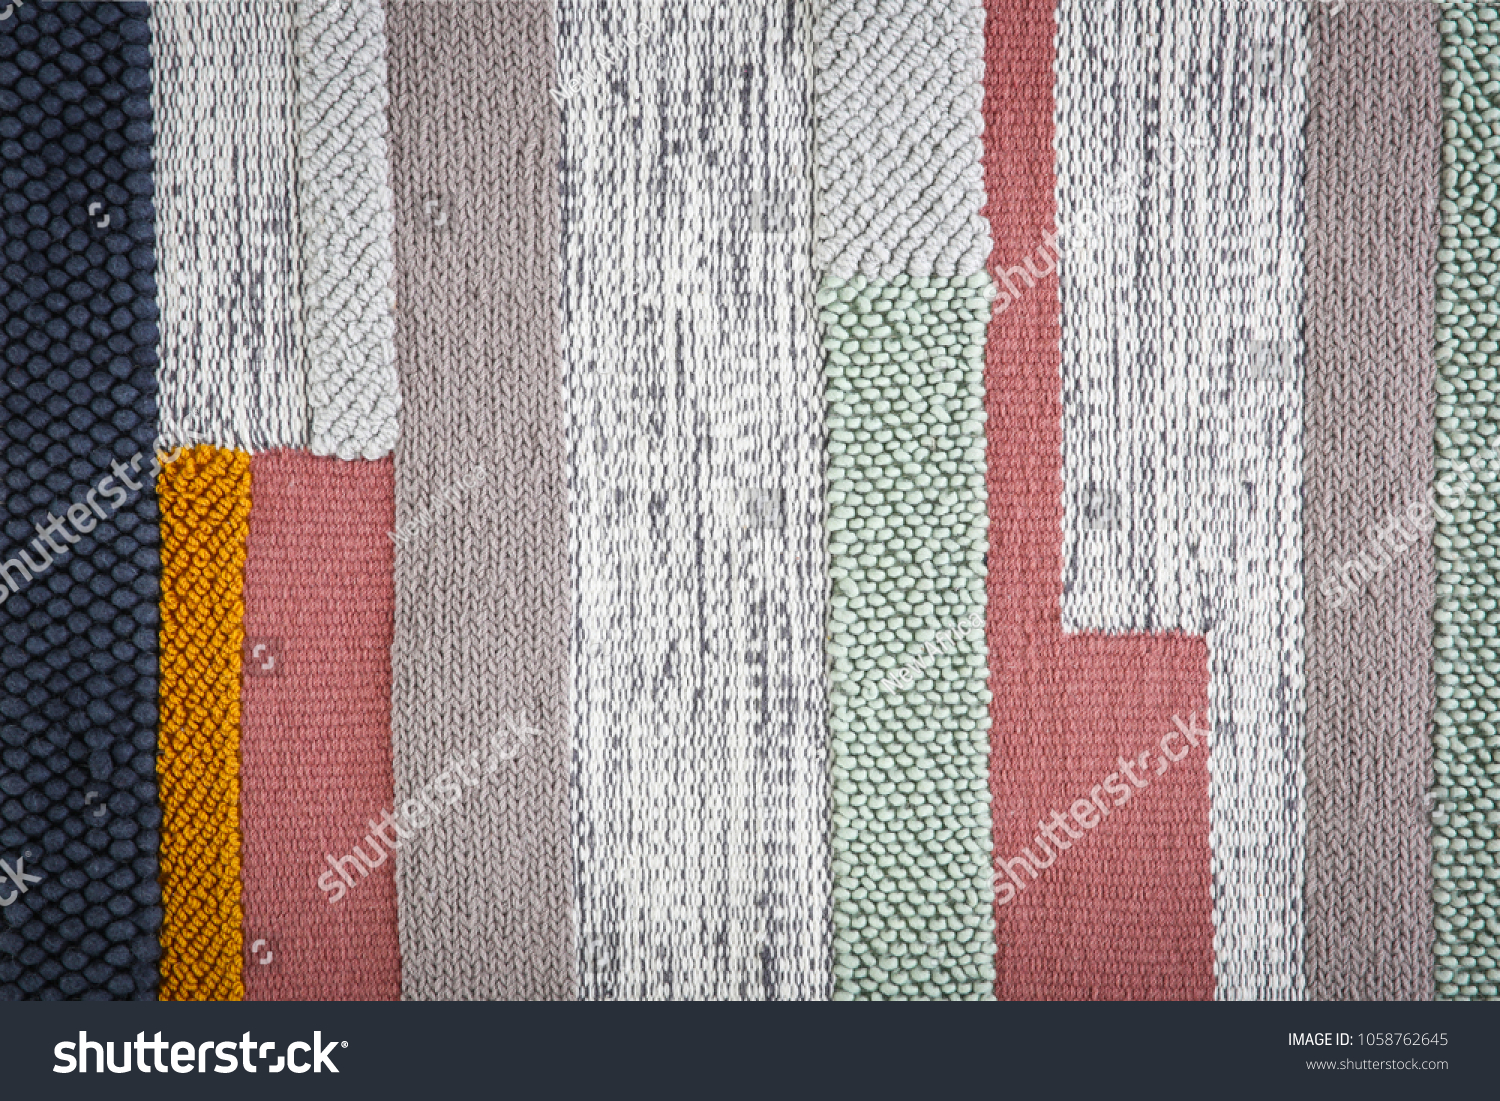 Colorful striped carpet as background #1058762645